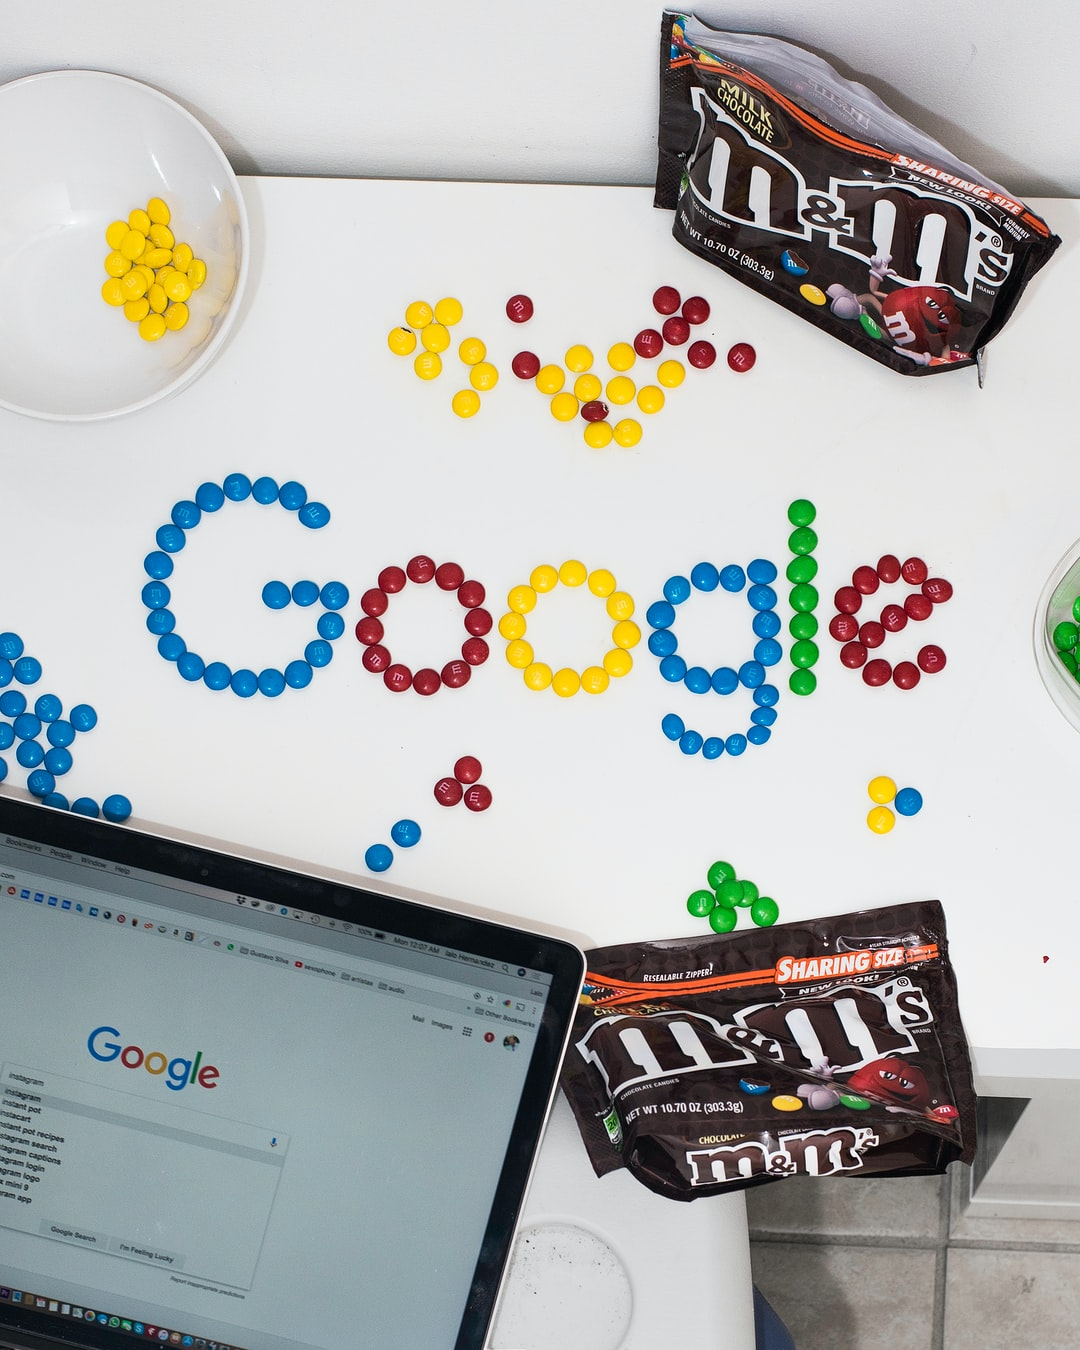 Why is Google My Business more important than Social Media?